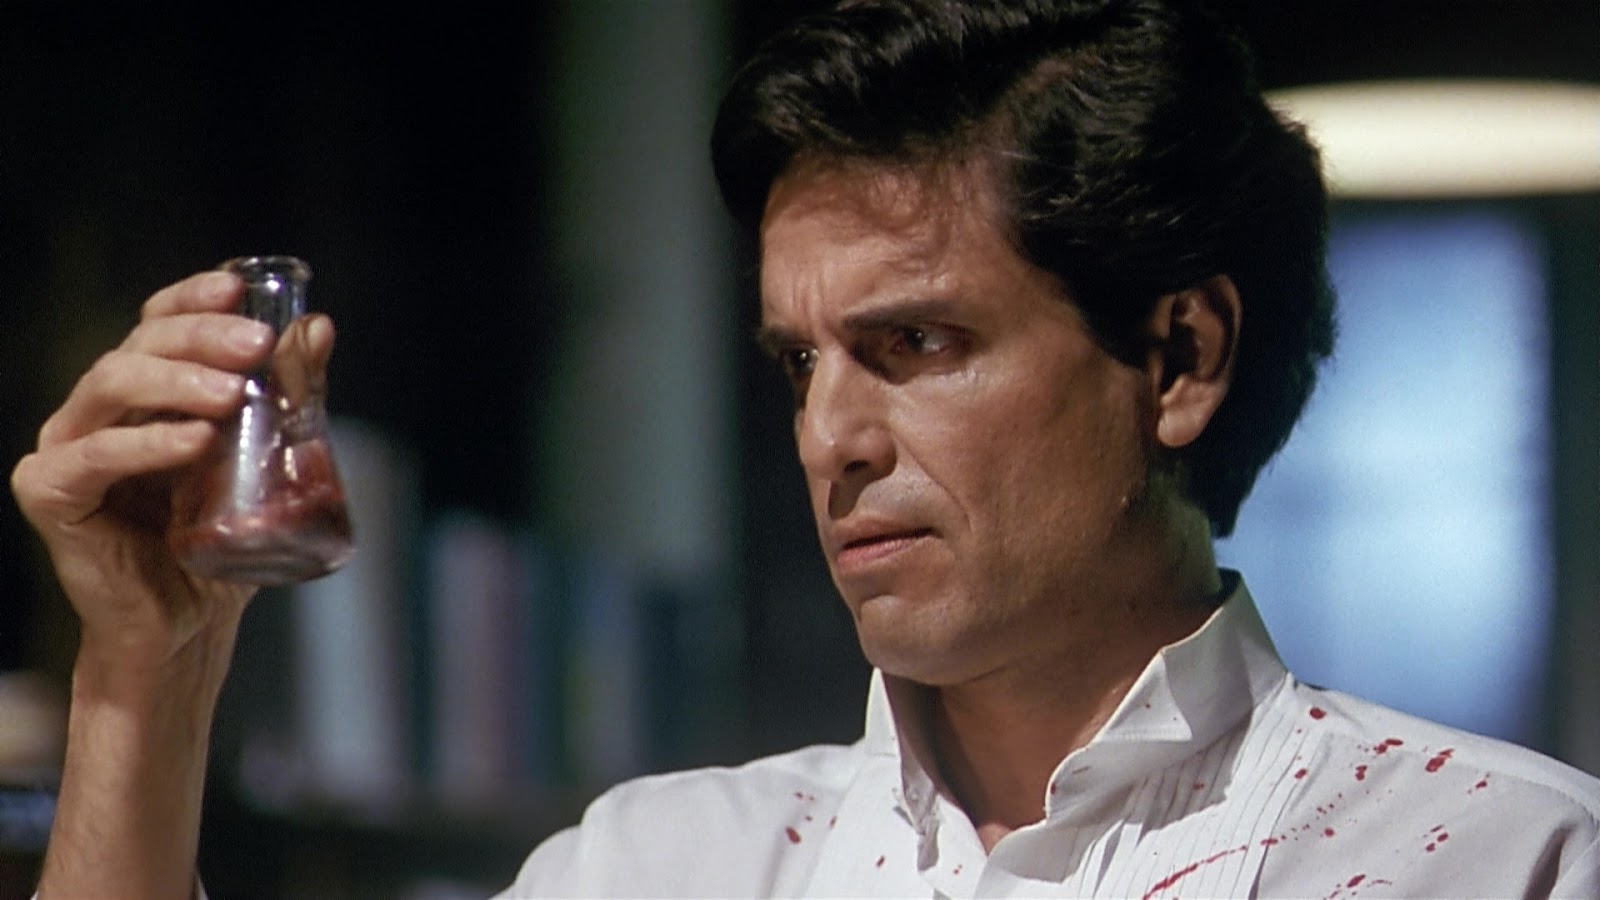 Chris Sarandon as Charles Dexter Ward in The Resurrected (1992)